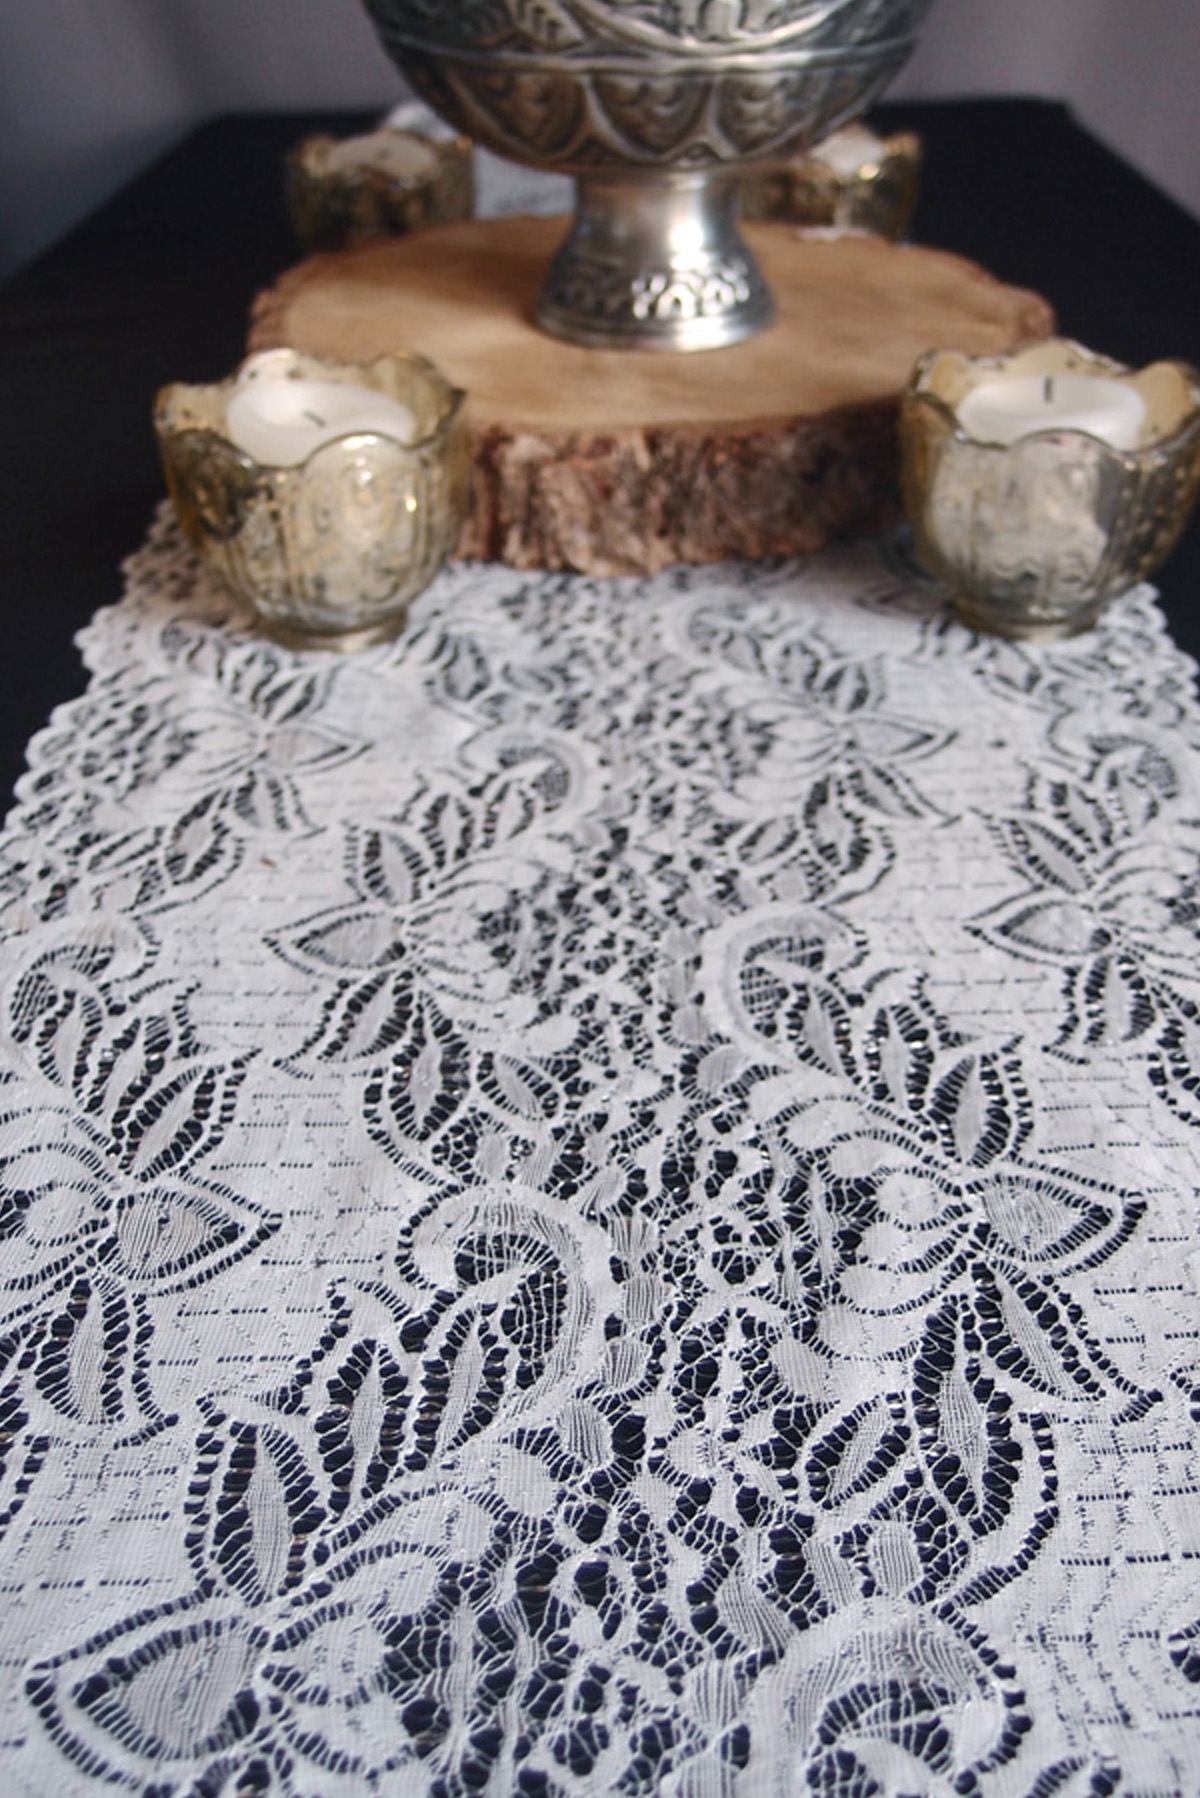 Lace Table Runners | 120 Table Runner | Cheap Lace Table Runners Wedding